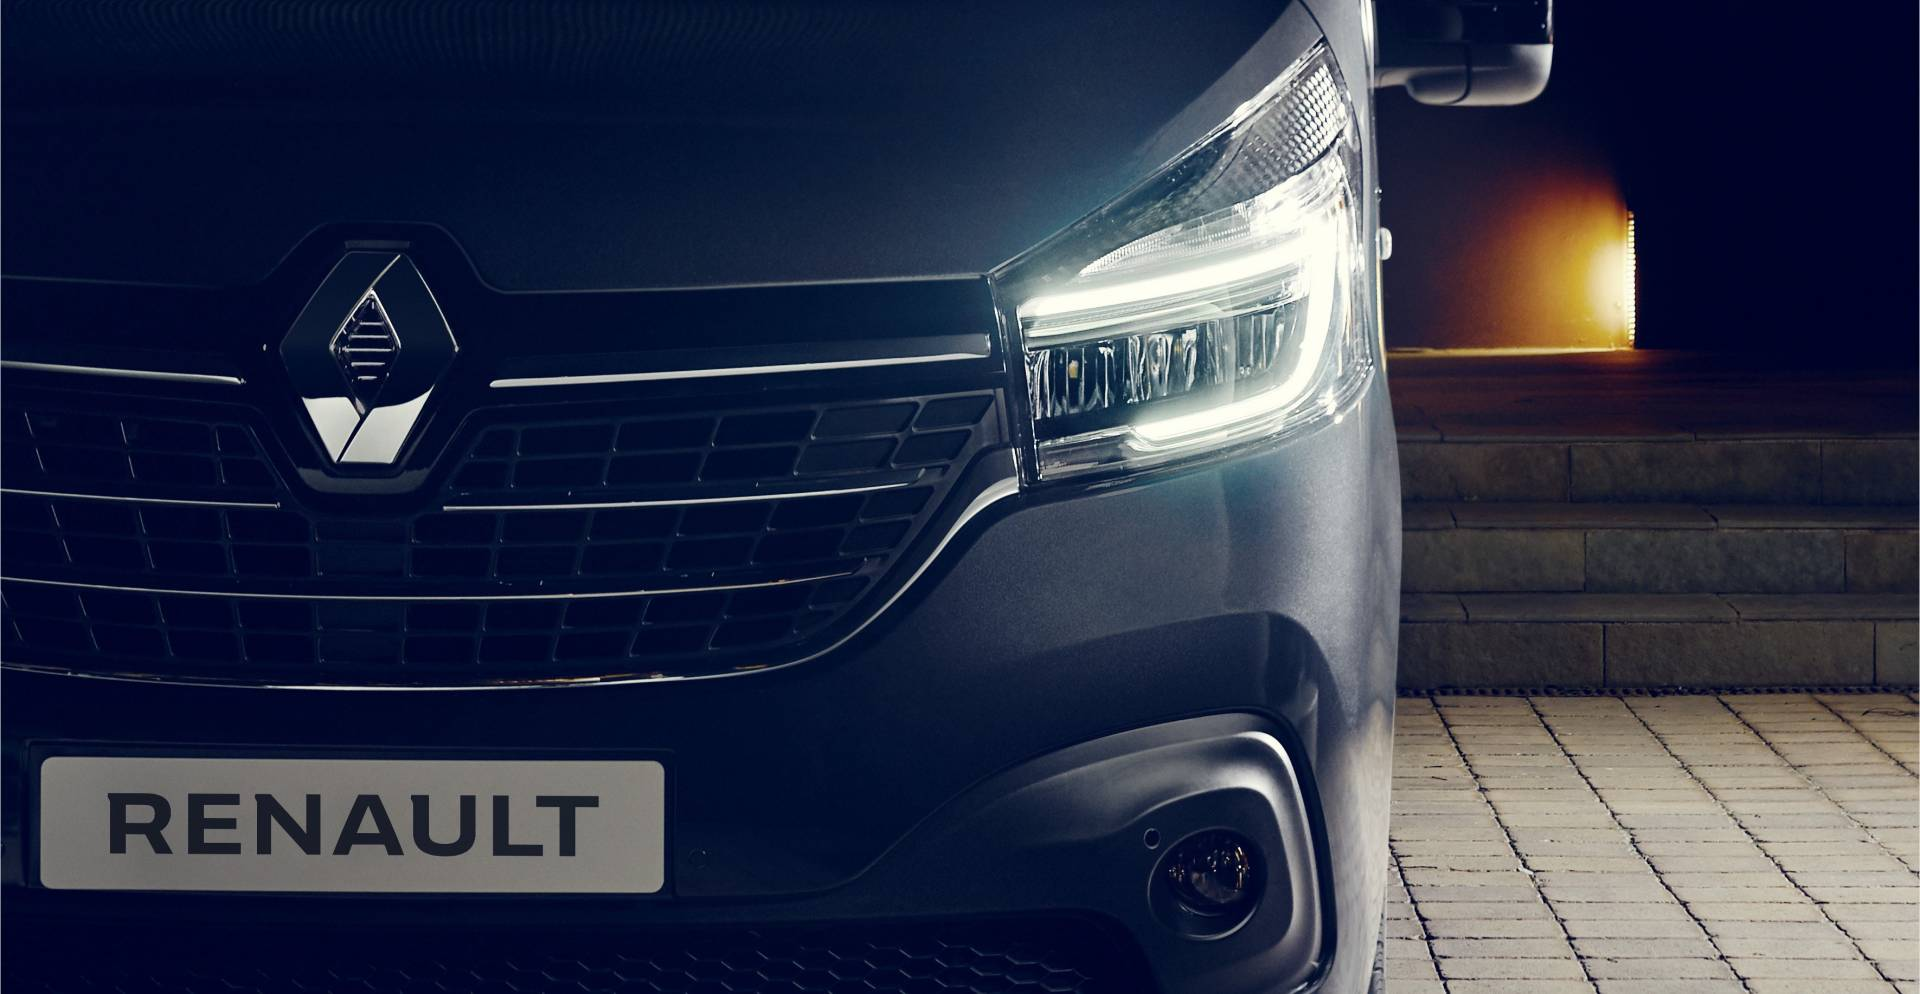 49b2551a-2019my-renault-trafic-spaceclass-facelift-10